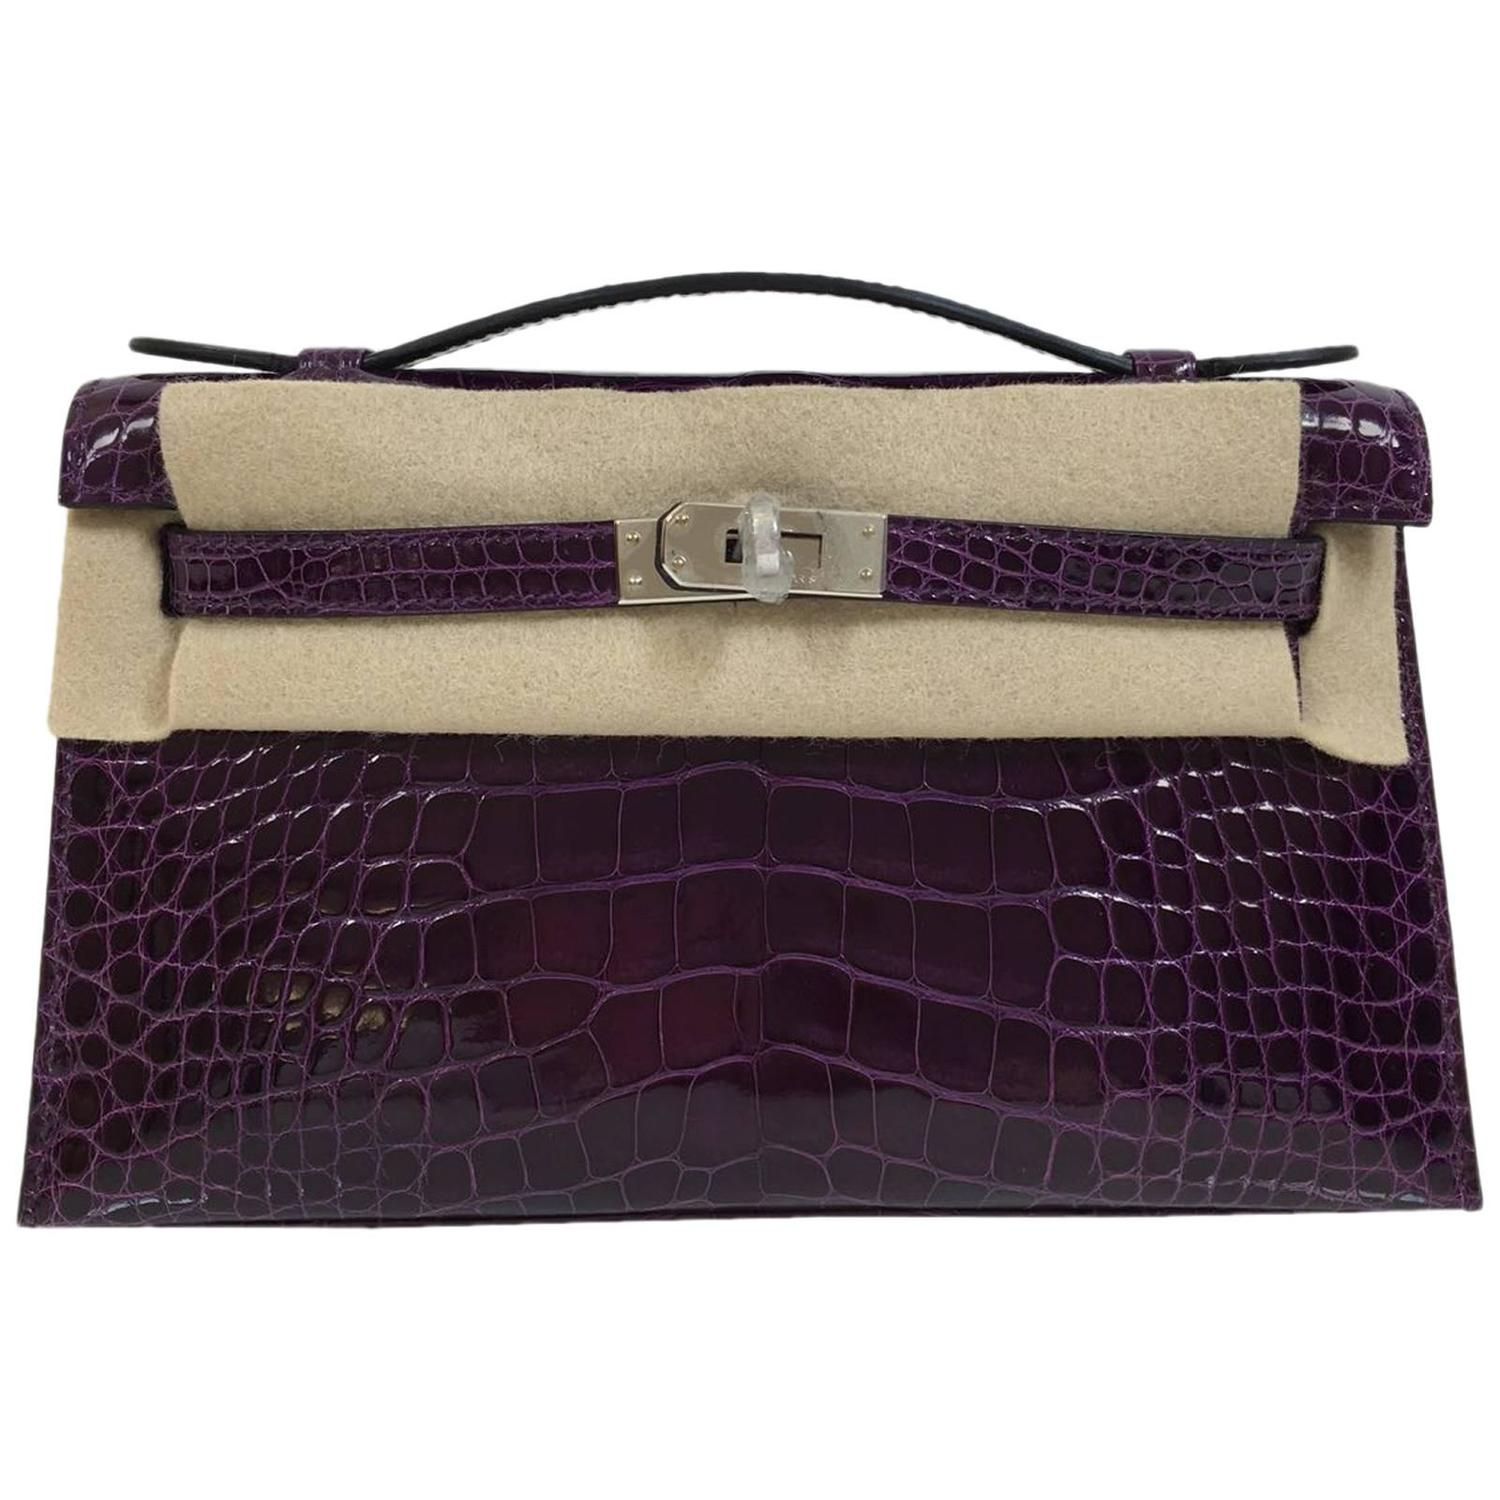 silver plum handbags - Rare Hermes Kelly Pochette crocodile shiny cassis phw For Sale at ...